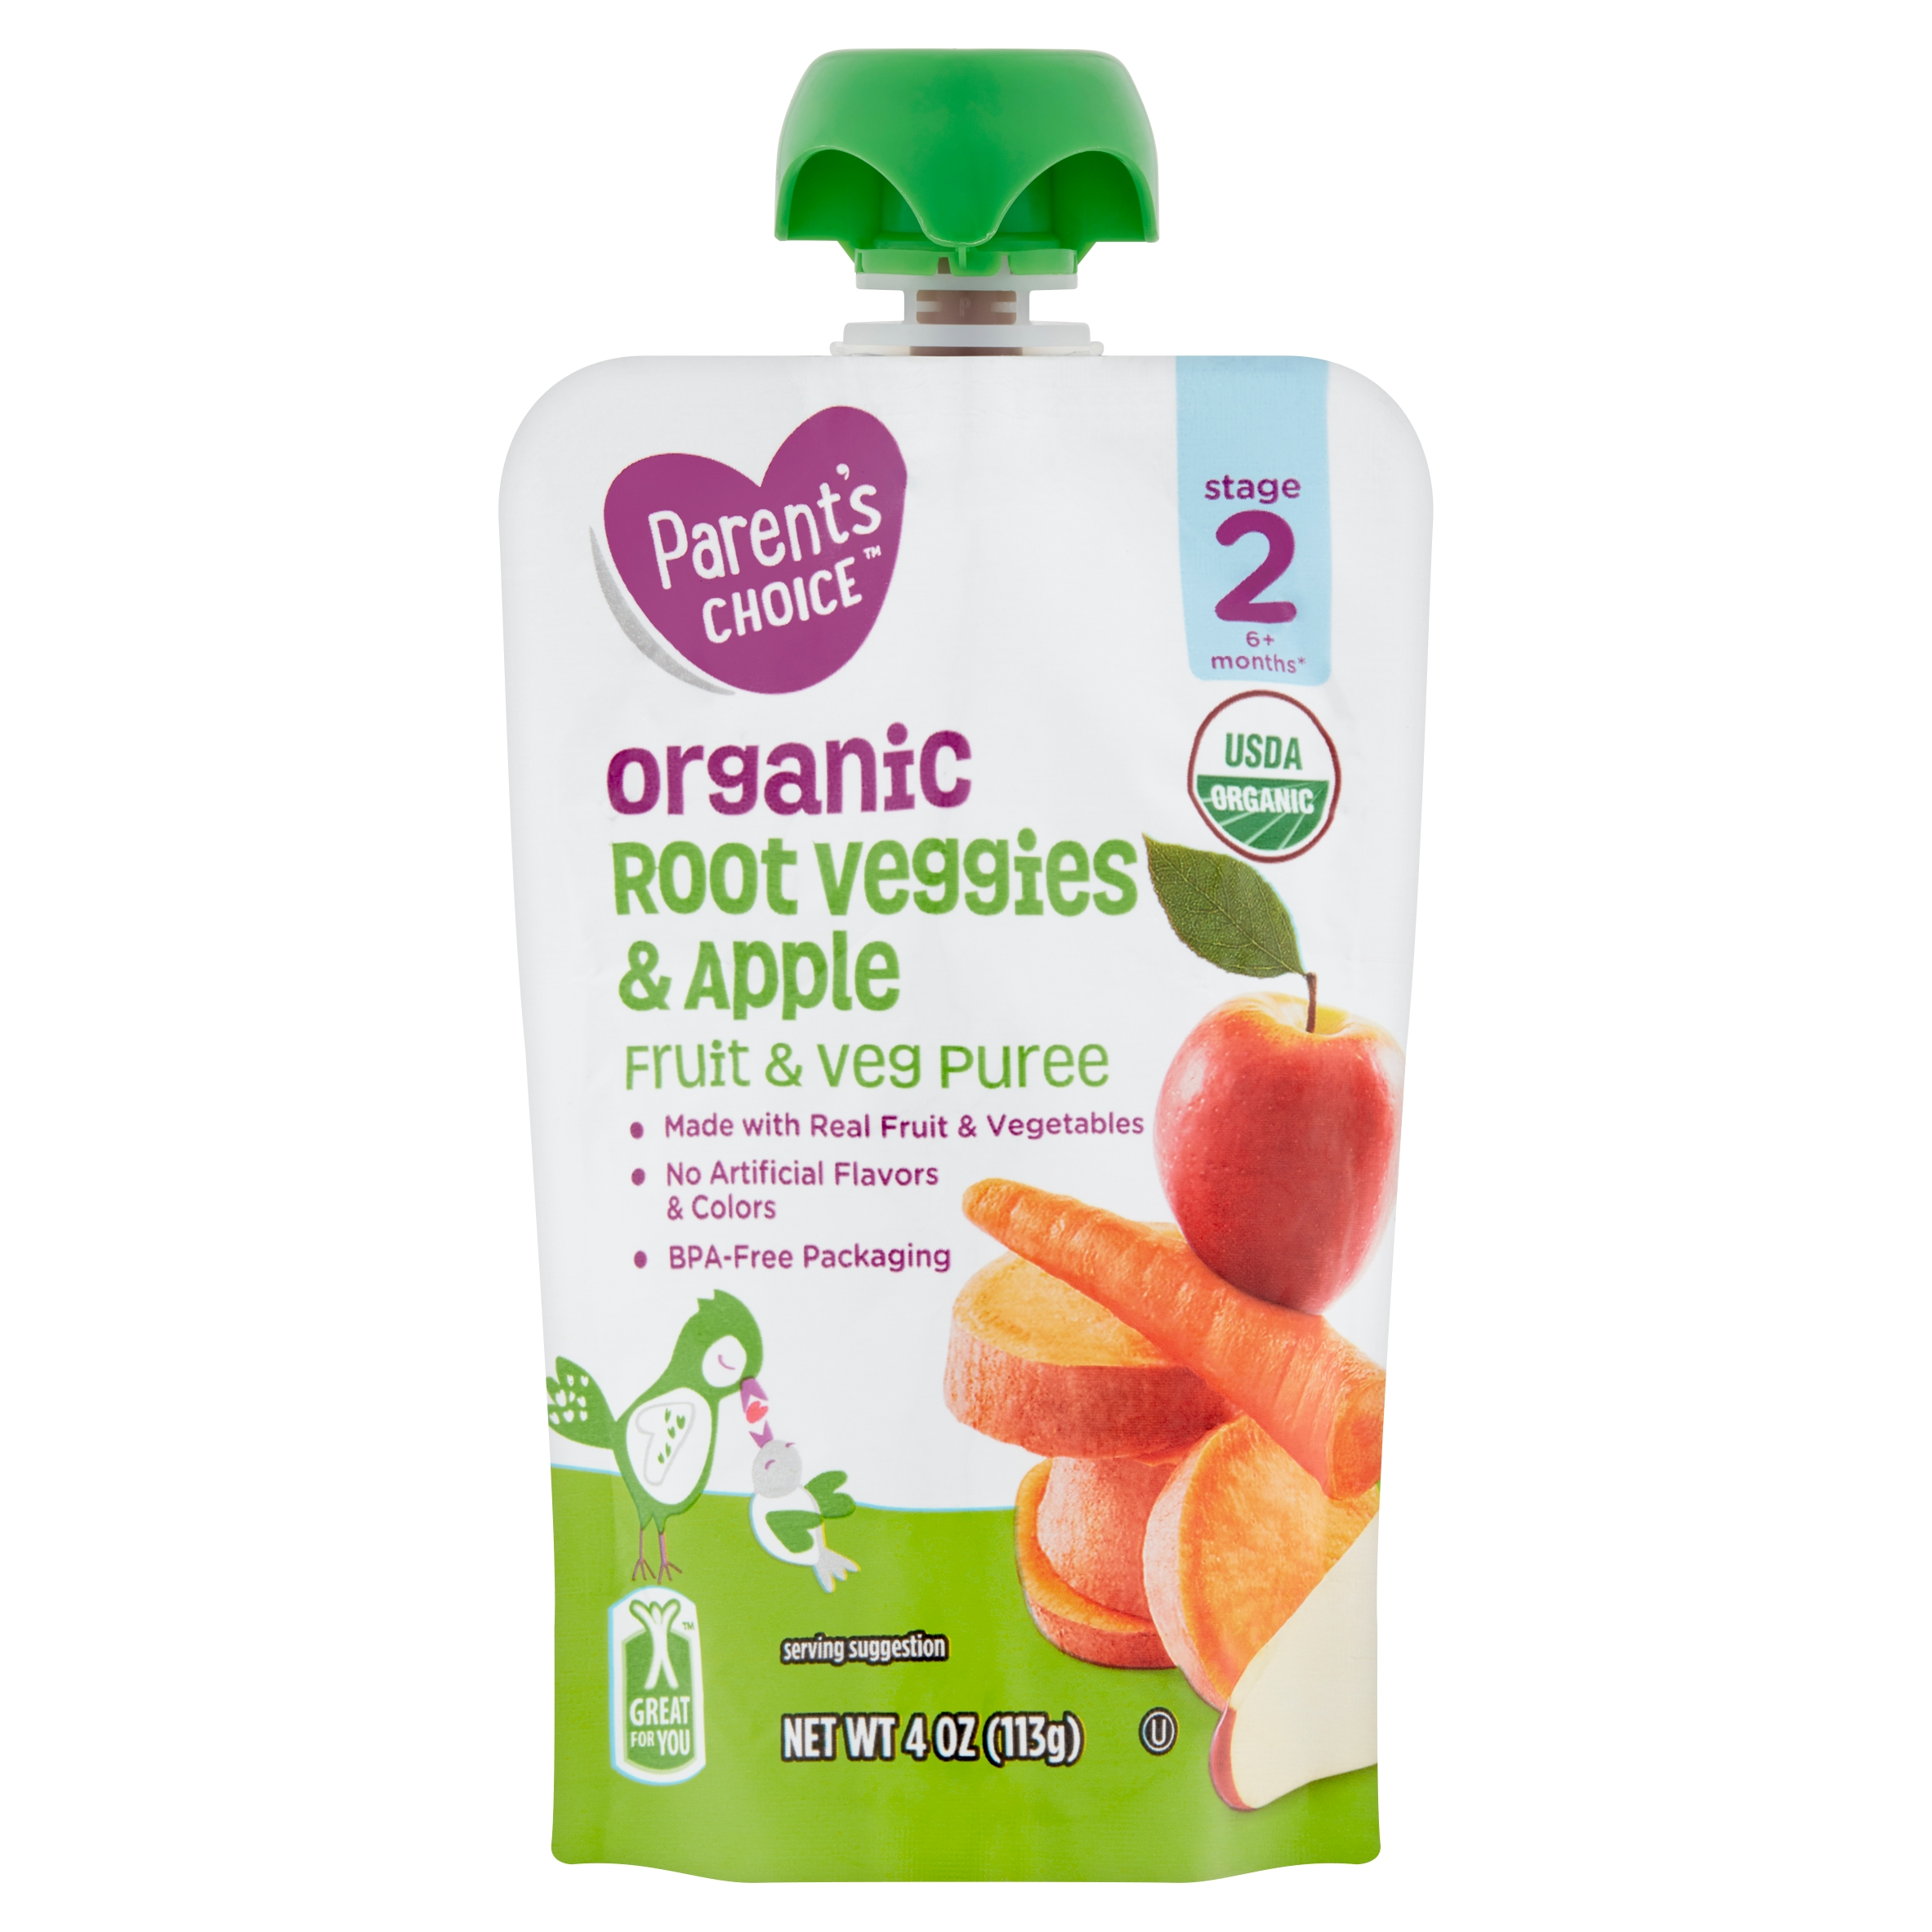 Parent's Choice Organic Root Veggies & Apple, Stage 2, 4 oz Pouch